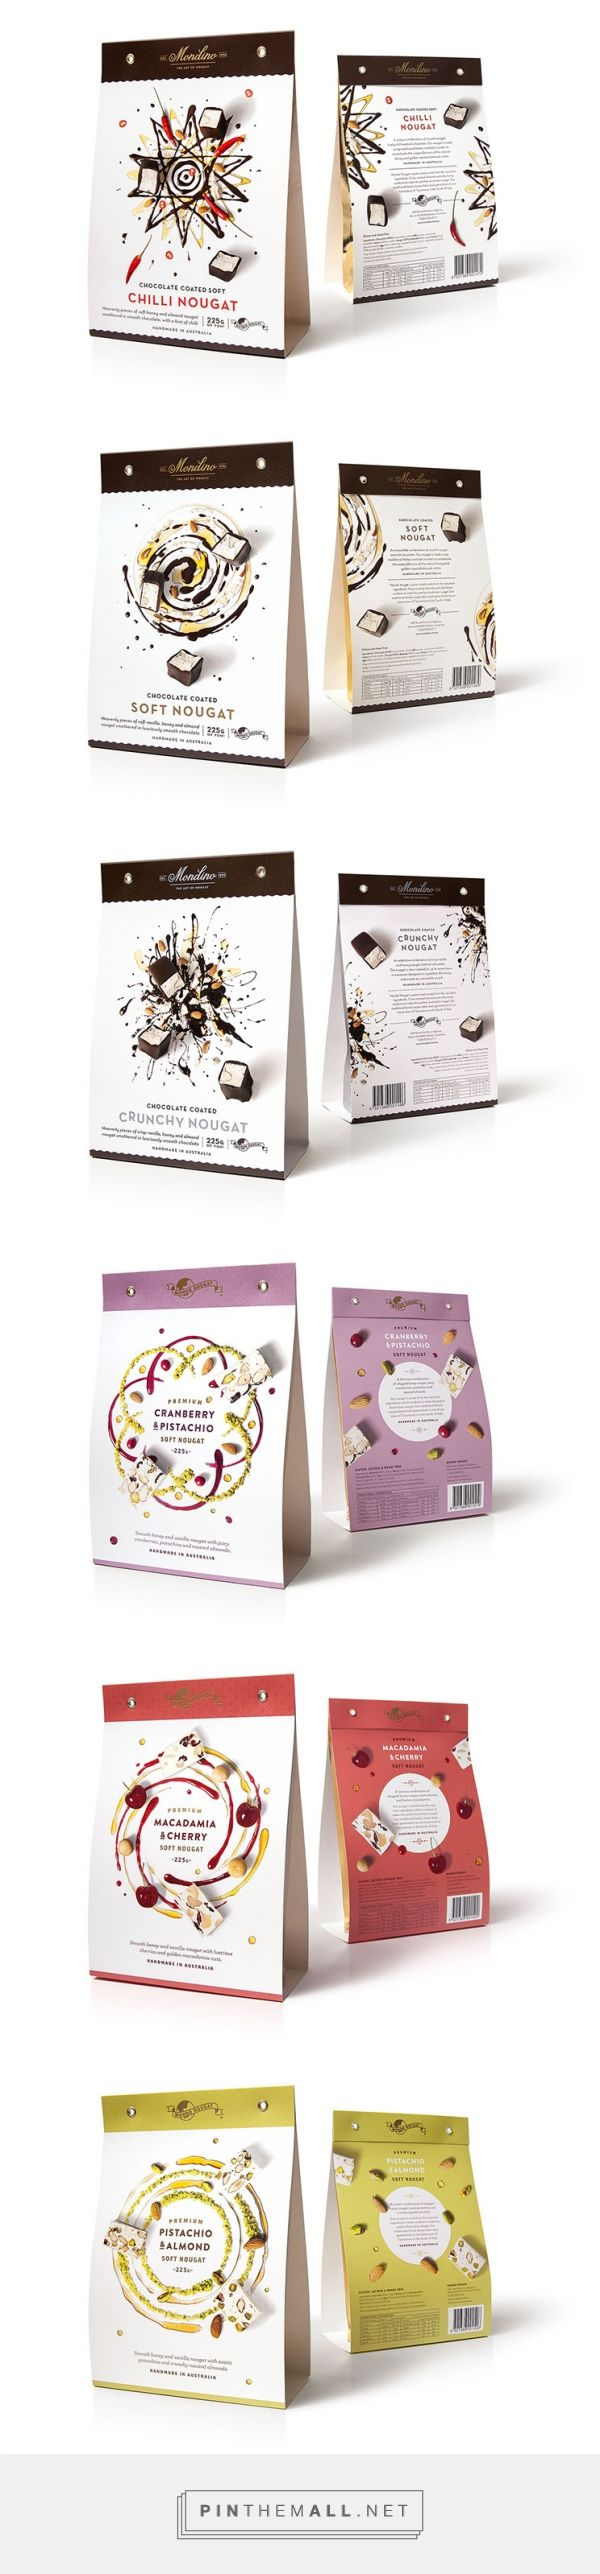 Nougat packaging design, food packaging design | Dessein - created via http://pinthemall.net